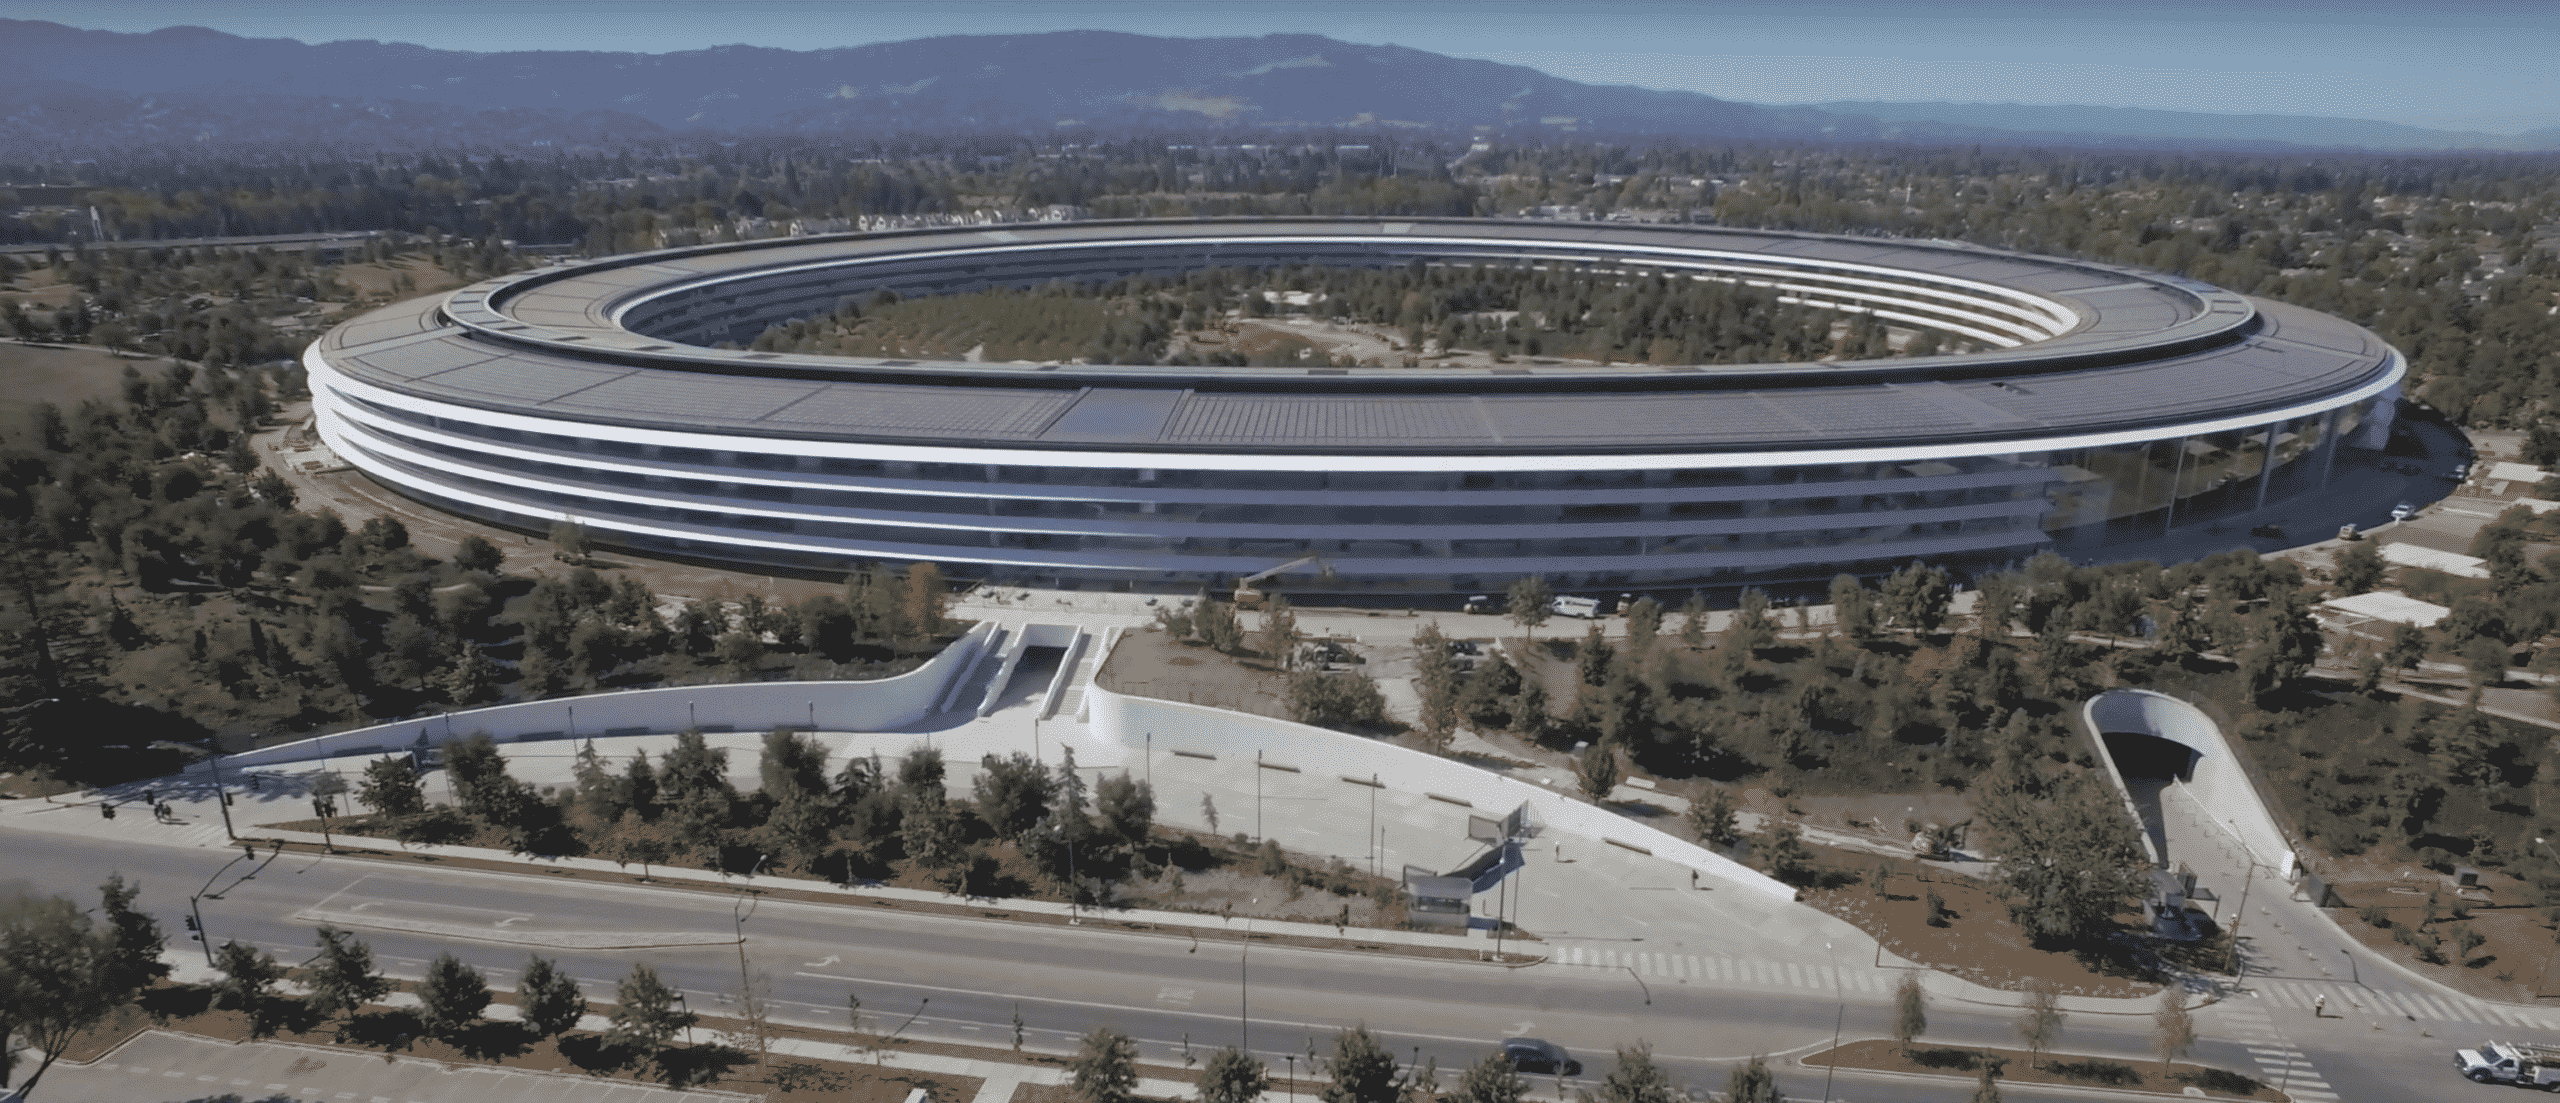 No Apple event on March 16